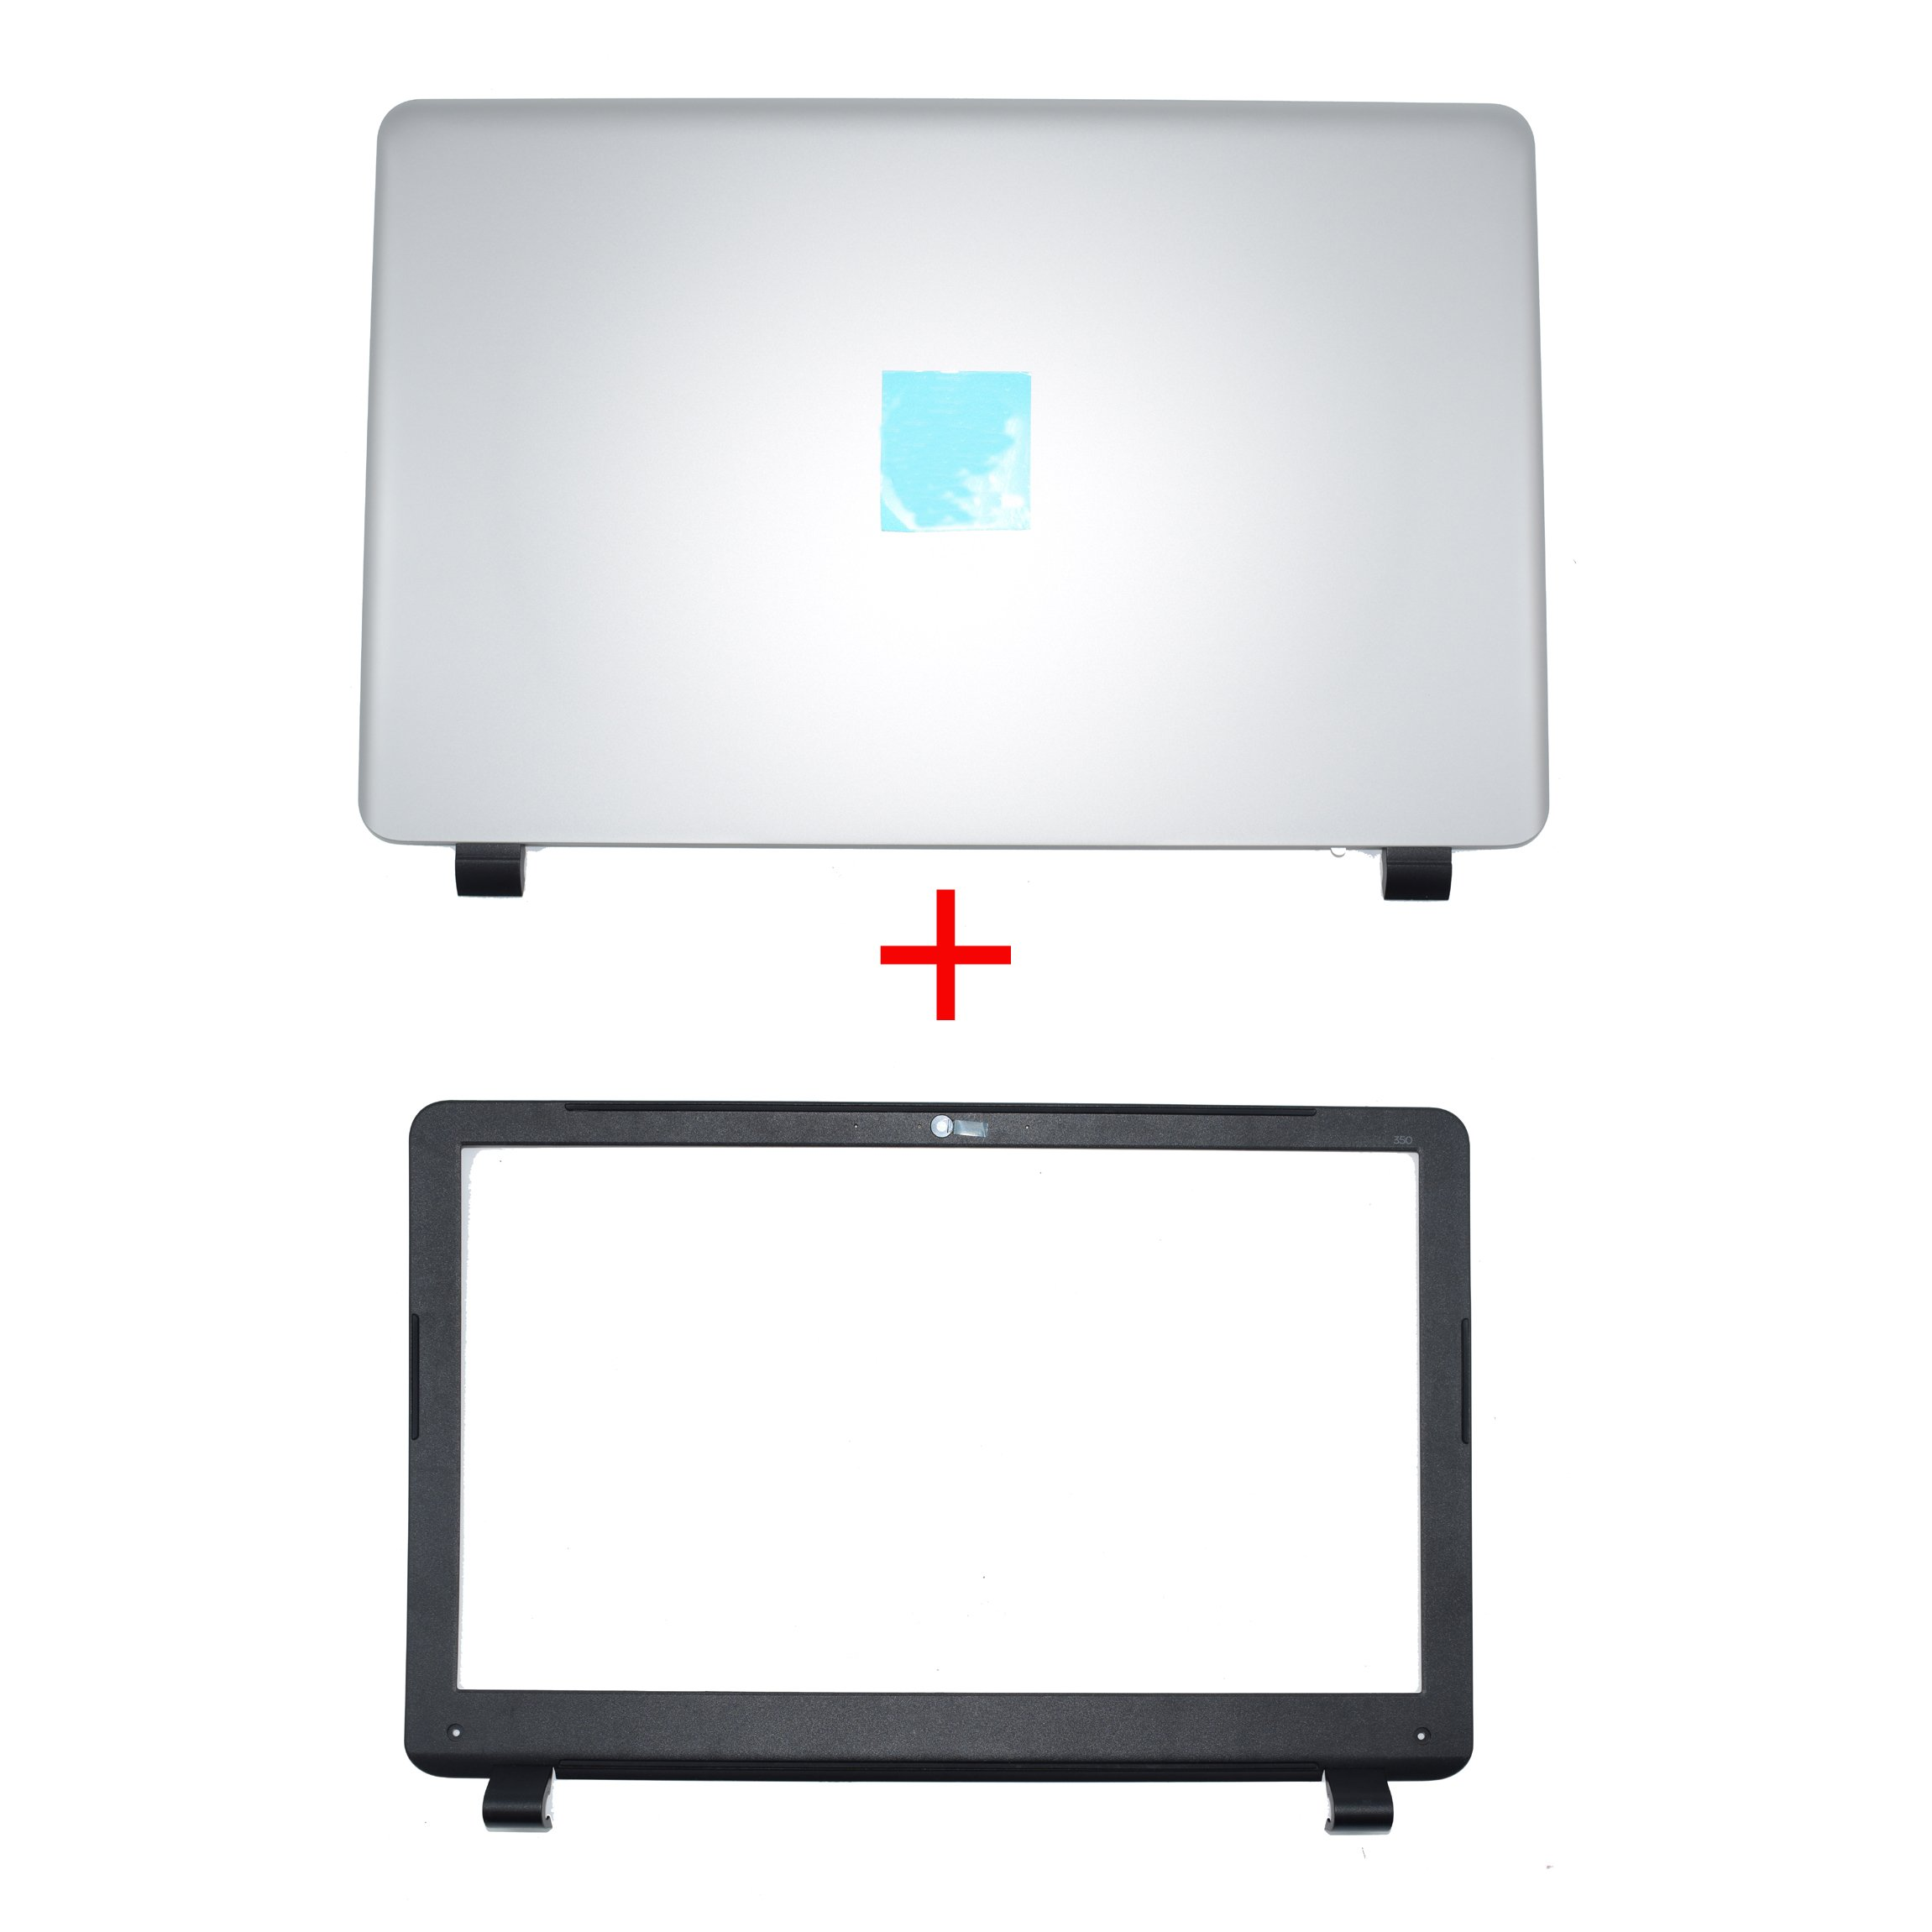 New For HP 350 G1 Lcd Rear Cover Screen Lid Top Shell & Front Frame LCD Bezel With Camera Hole 758057-001 758055-001 by LHY Parts